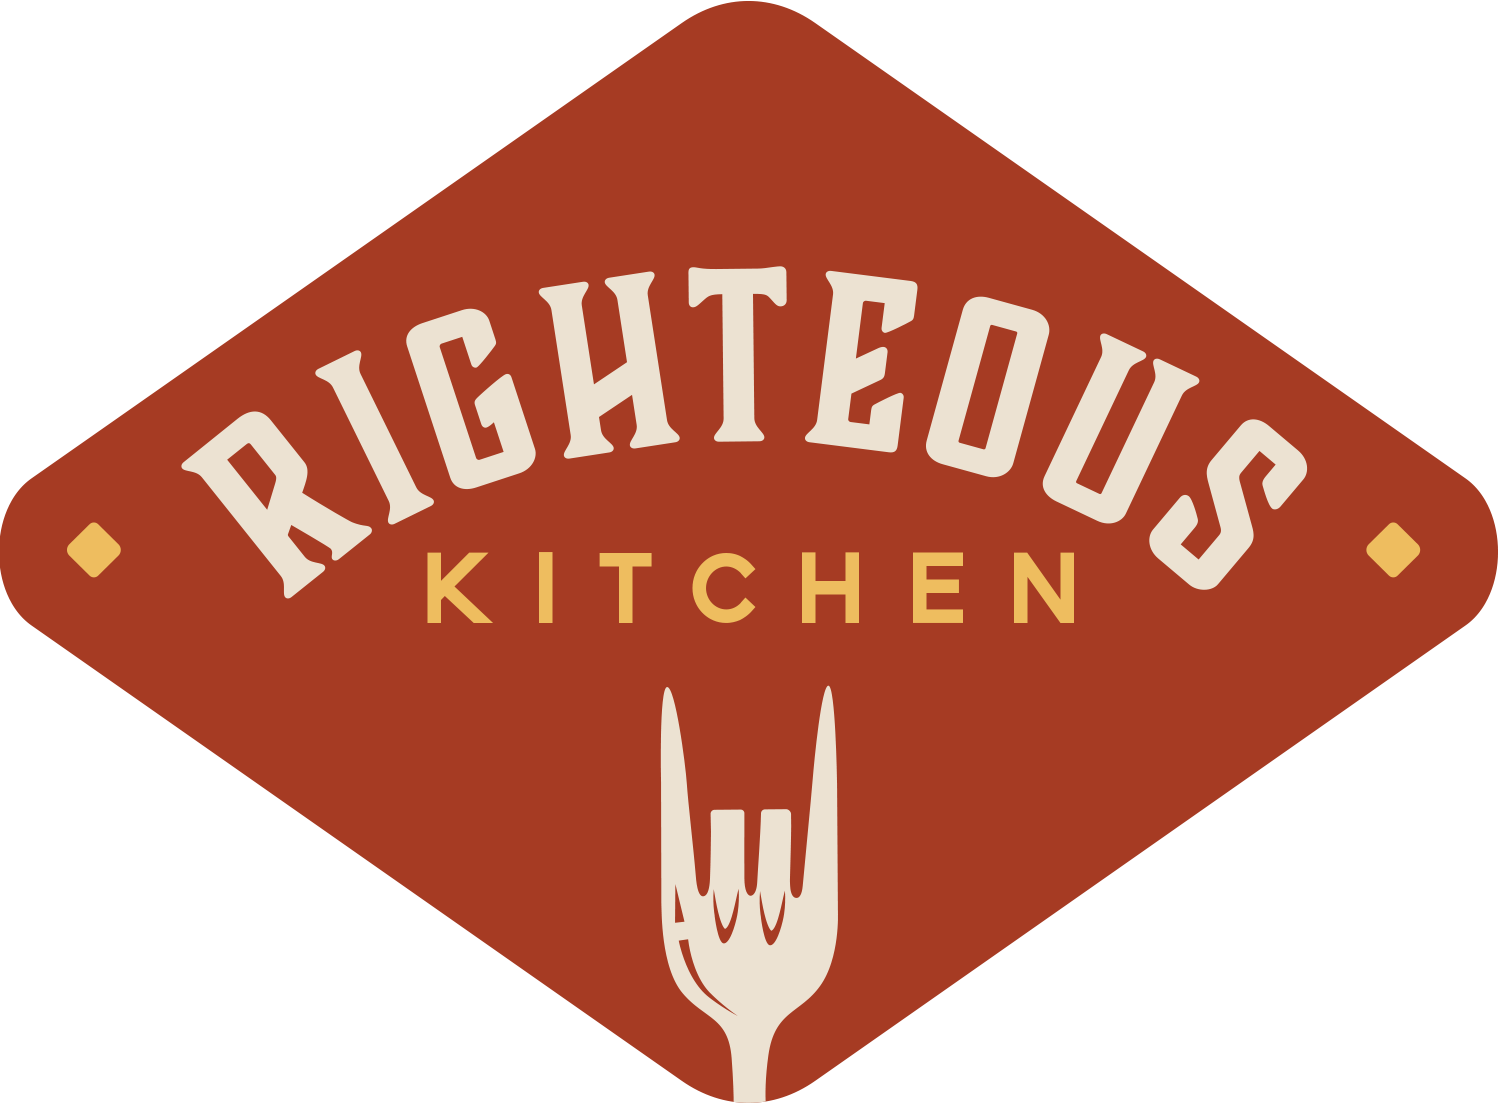 Righteous Kitchen